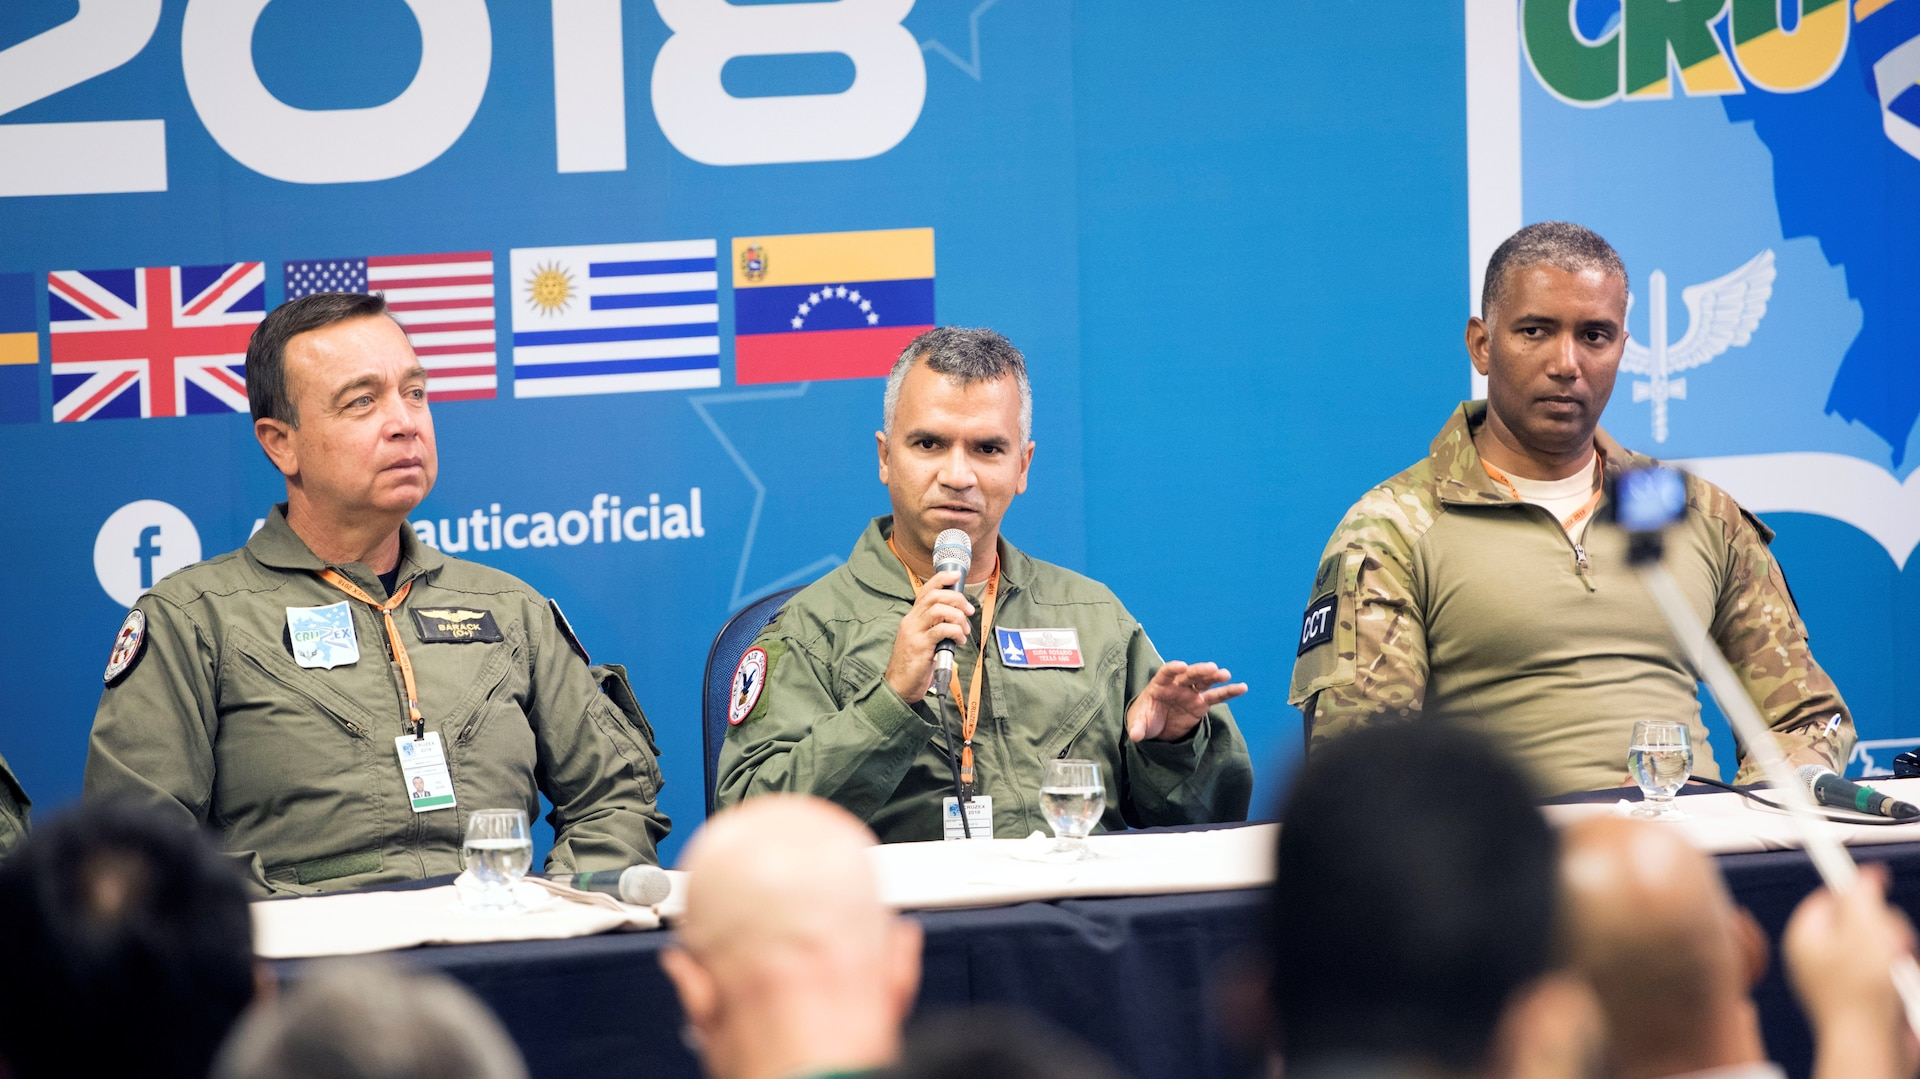 Col. Raul Rosario (center), commander of the 149th Fighter Wing, Air National Guard, participates in an international press panel which included representatives from seven other countries for CRUZEX2018 at Natal Air Force Base, Nov. 19. Approximately 100 international media representatives joined the press conference, hosted by the Brazilian Air Force, to learn about the goals and expectations of the air exercise. The 149th FW commander expressed his gratitude to the host country and for the opportunity to work together as equals to promote peace and safety.